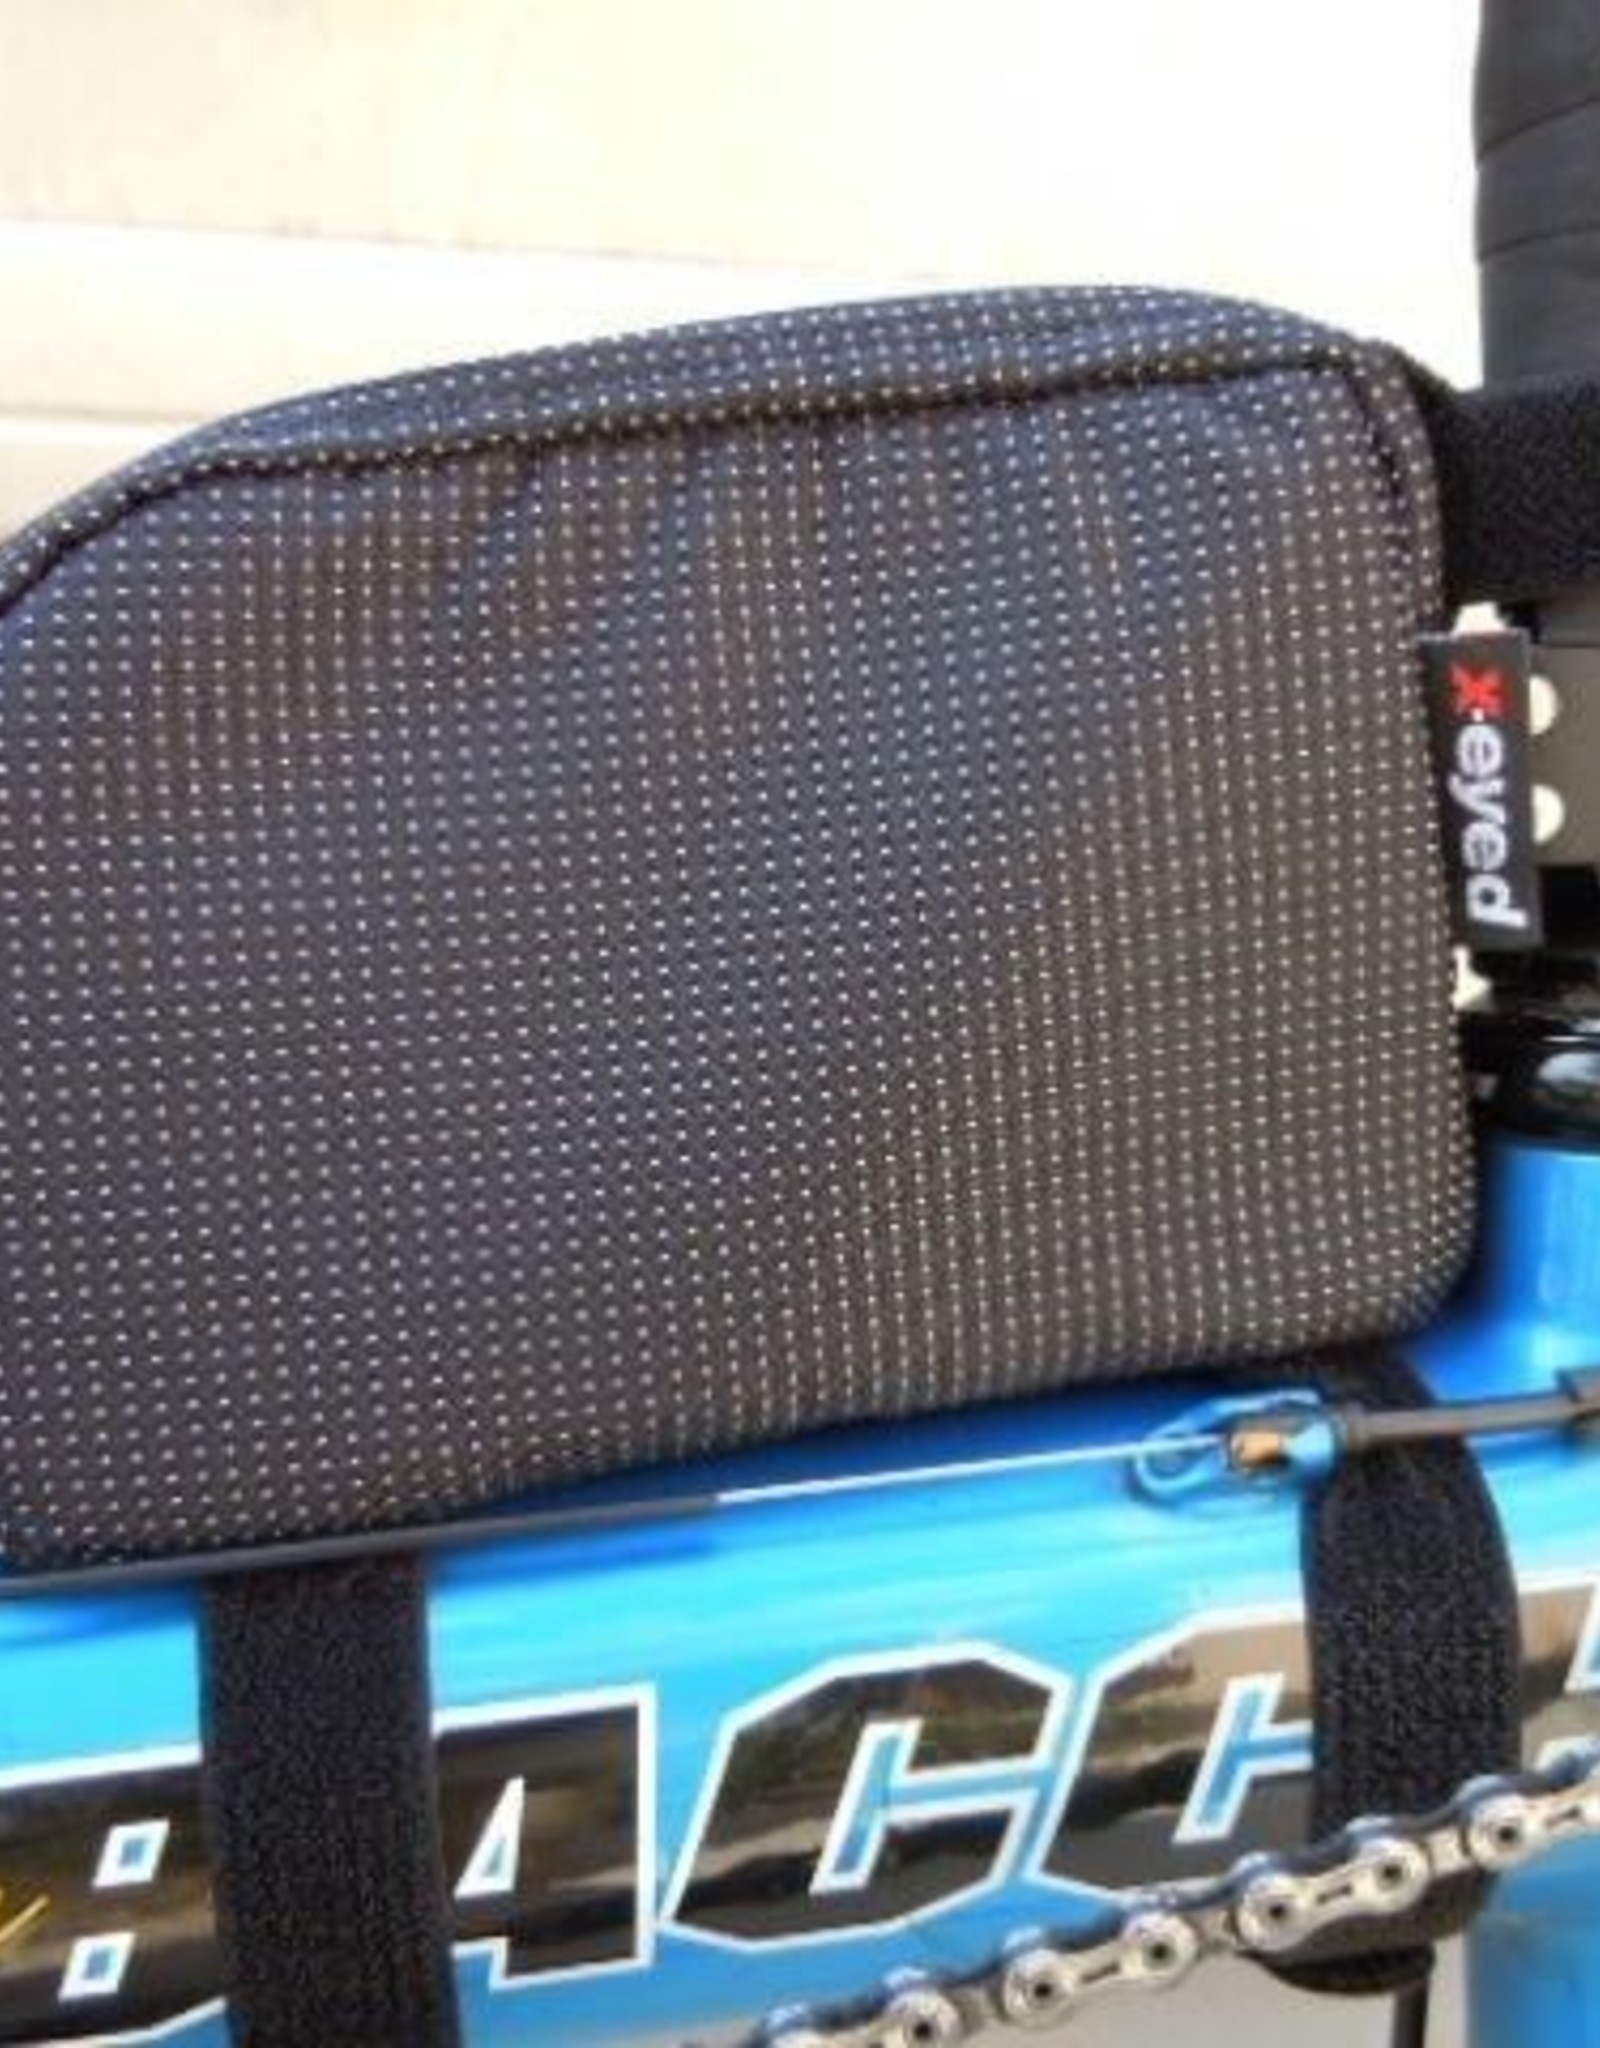 Bacchetta Bacchetta Top Tube Bag